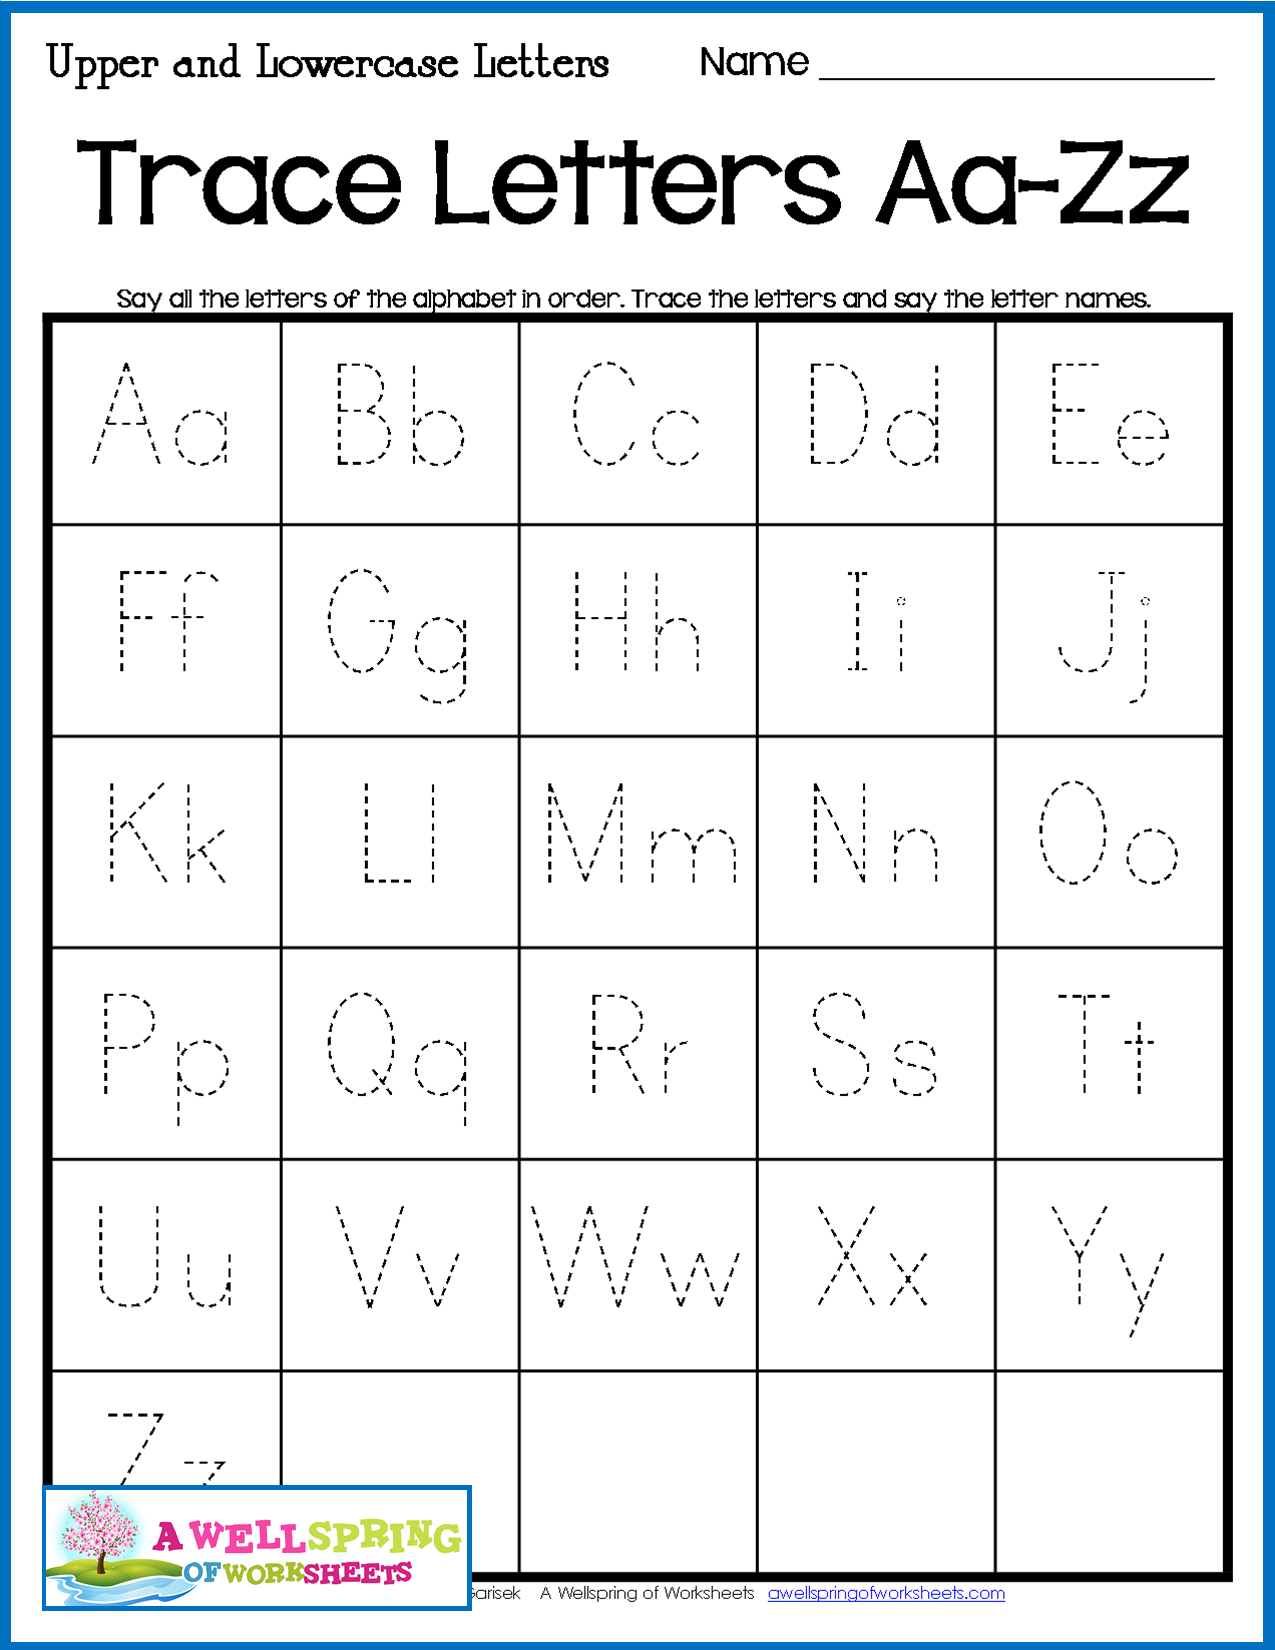 Alphabet Tracing Worksheets - Uppercase & Lowercase Letters intended for Alphabet Tracing Chart Printable